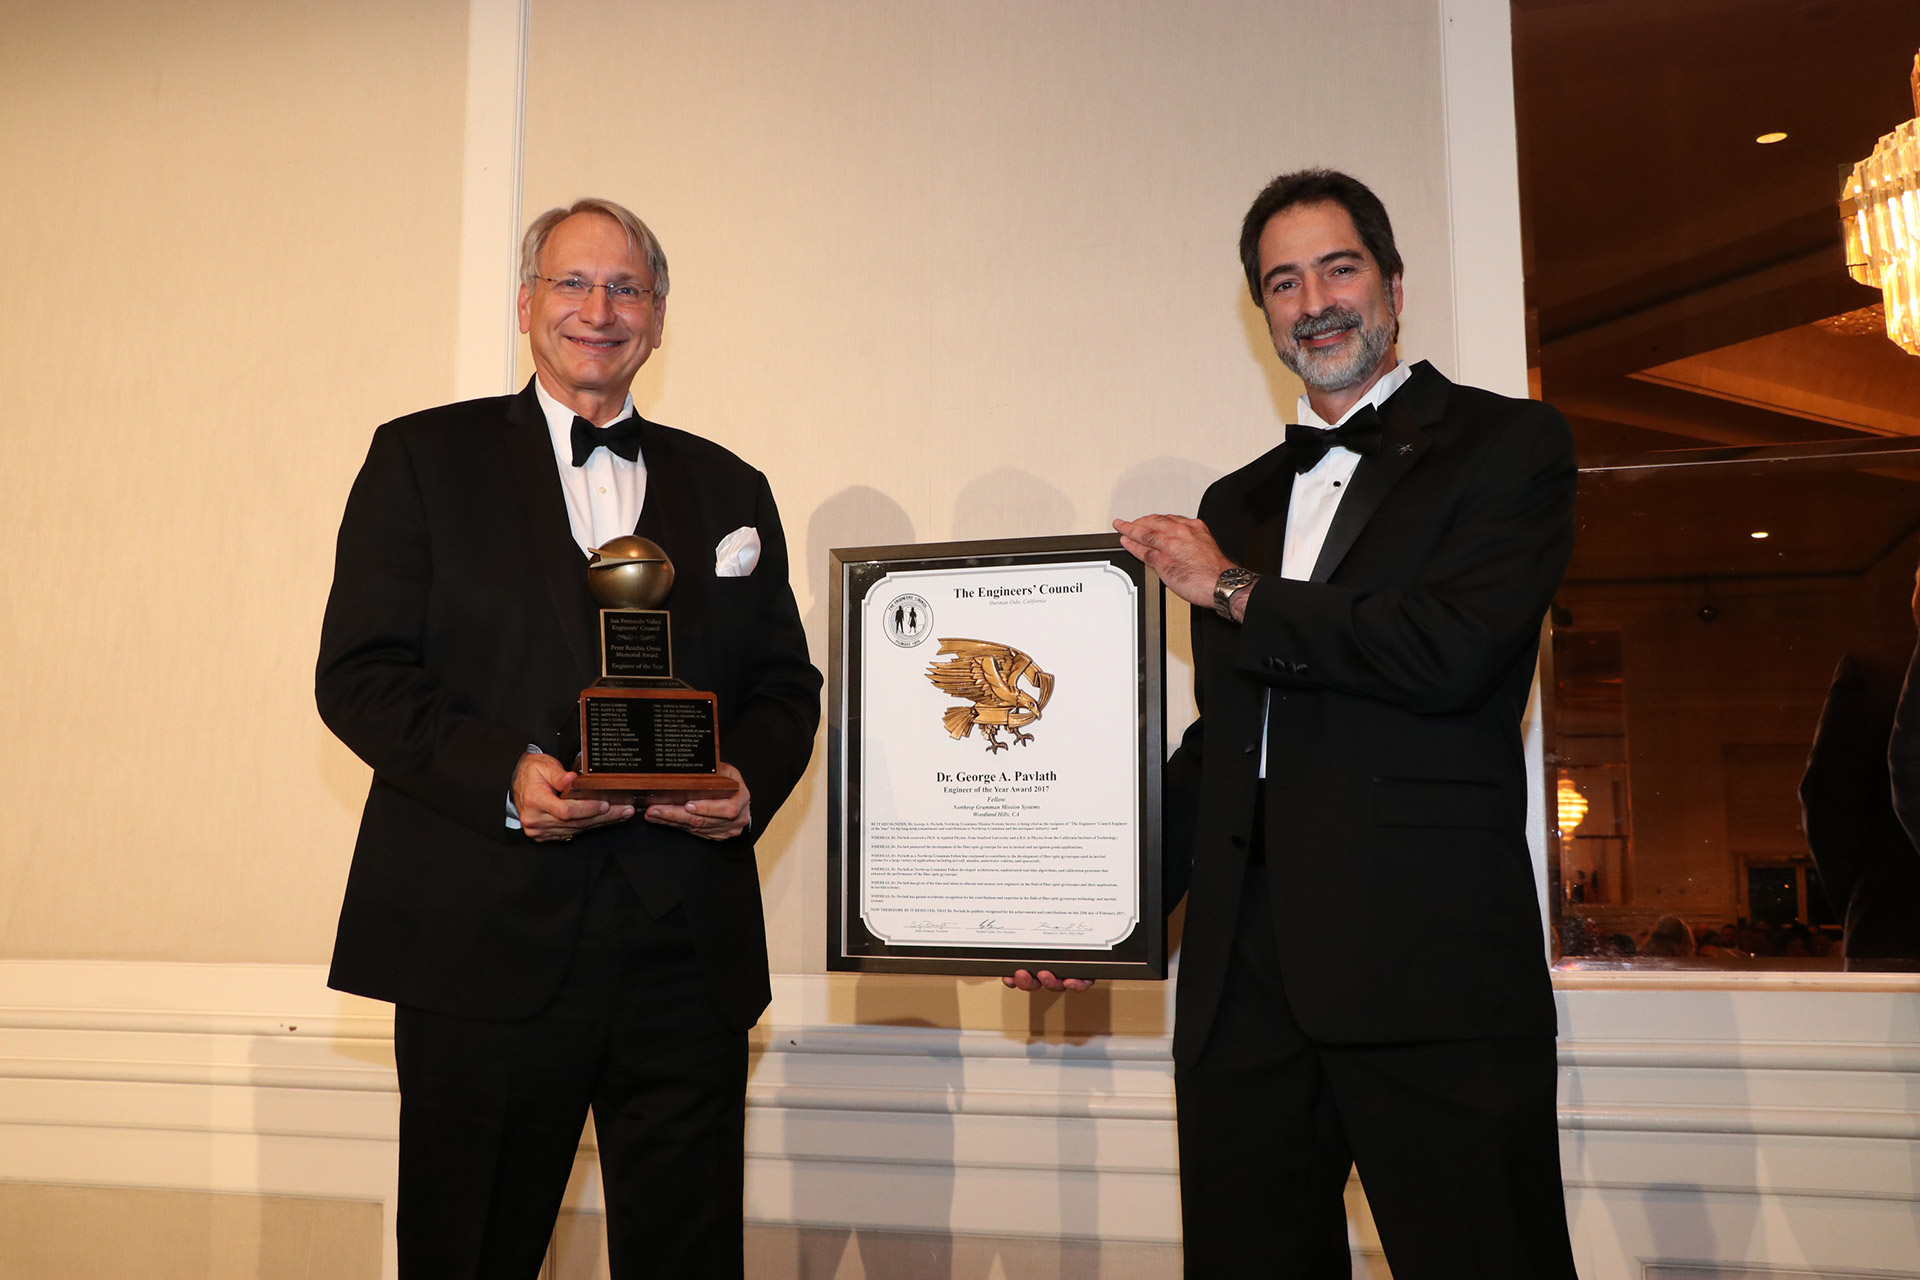 2017 Engineer of the Year- Dr. George A. Pavlath